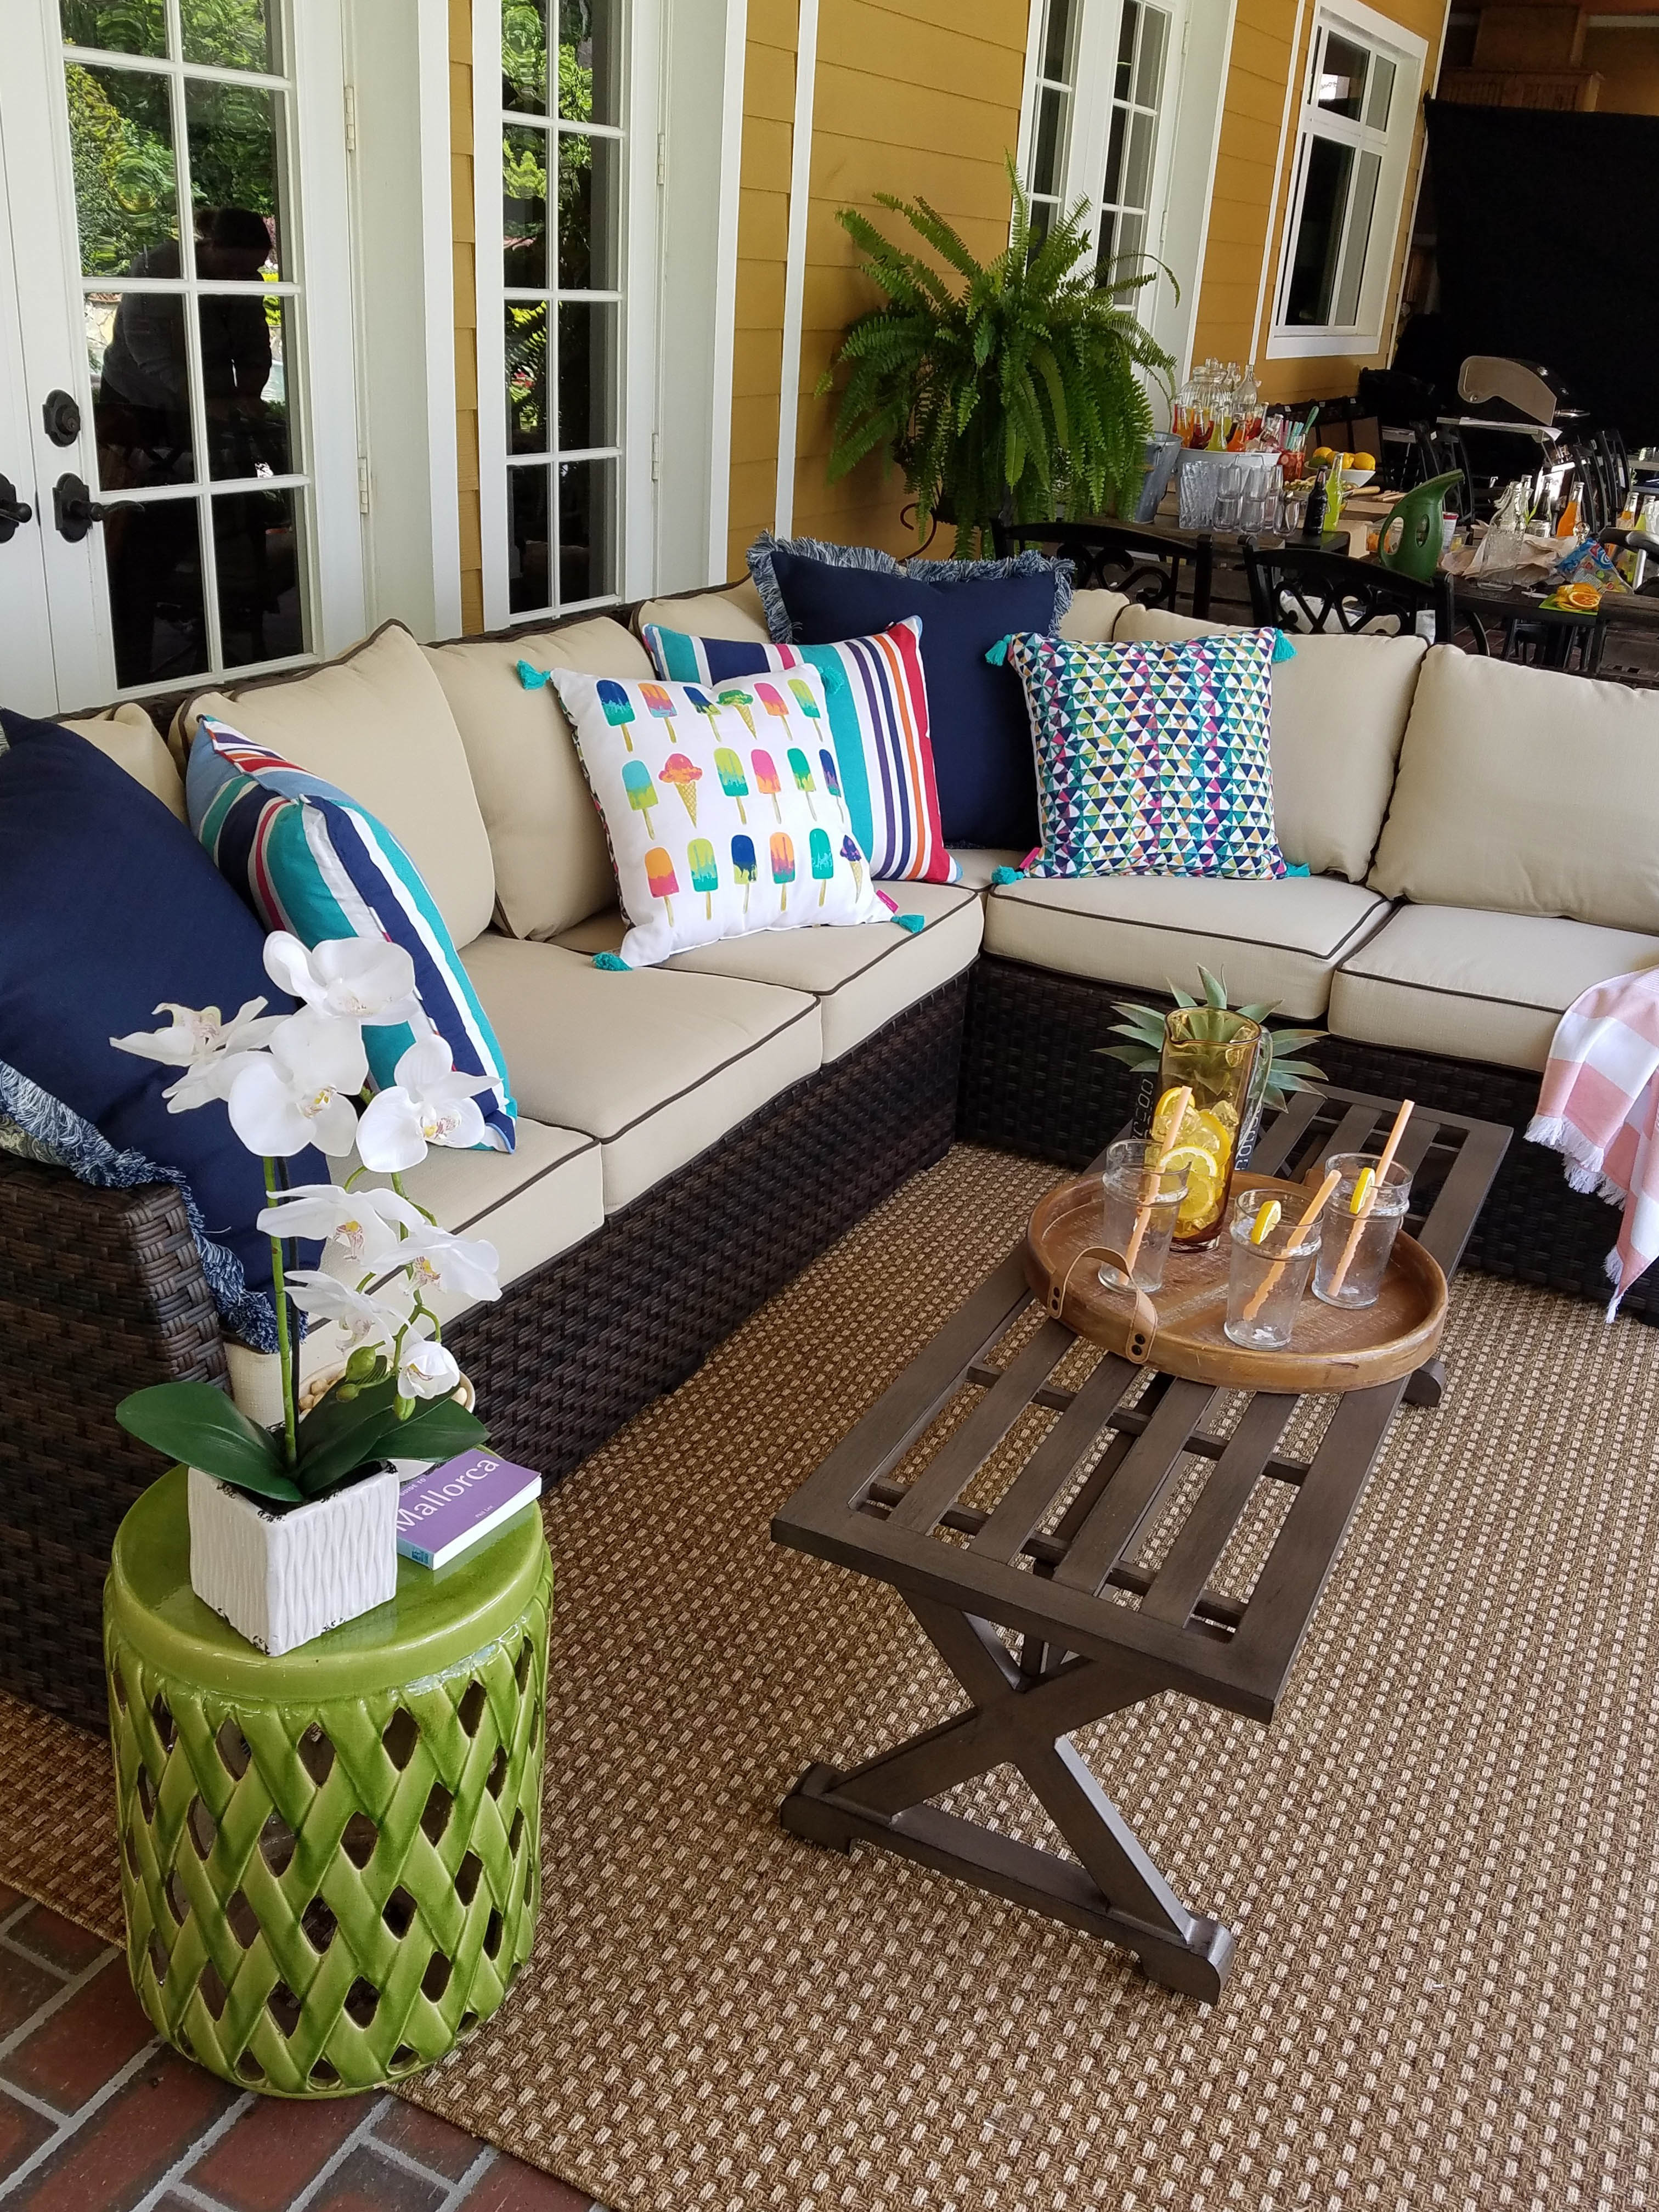 An outdoor cushioned sectional with bright and vibrant fun pillows on top. An outdoor table with a tray of lemonade on top with a small neon green side table with greenery for decoration.